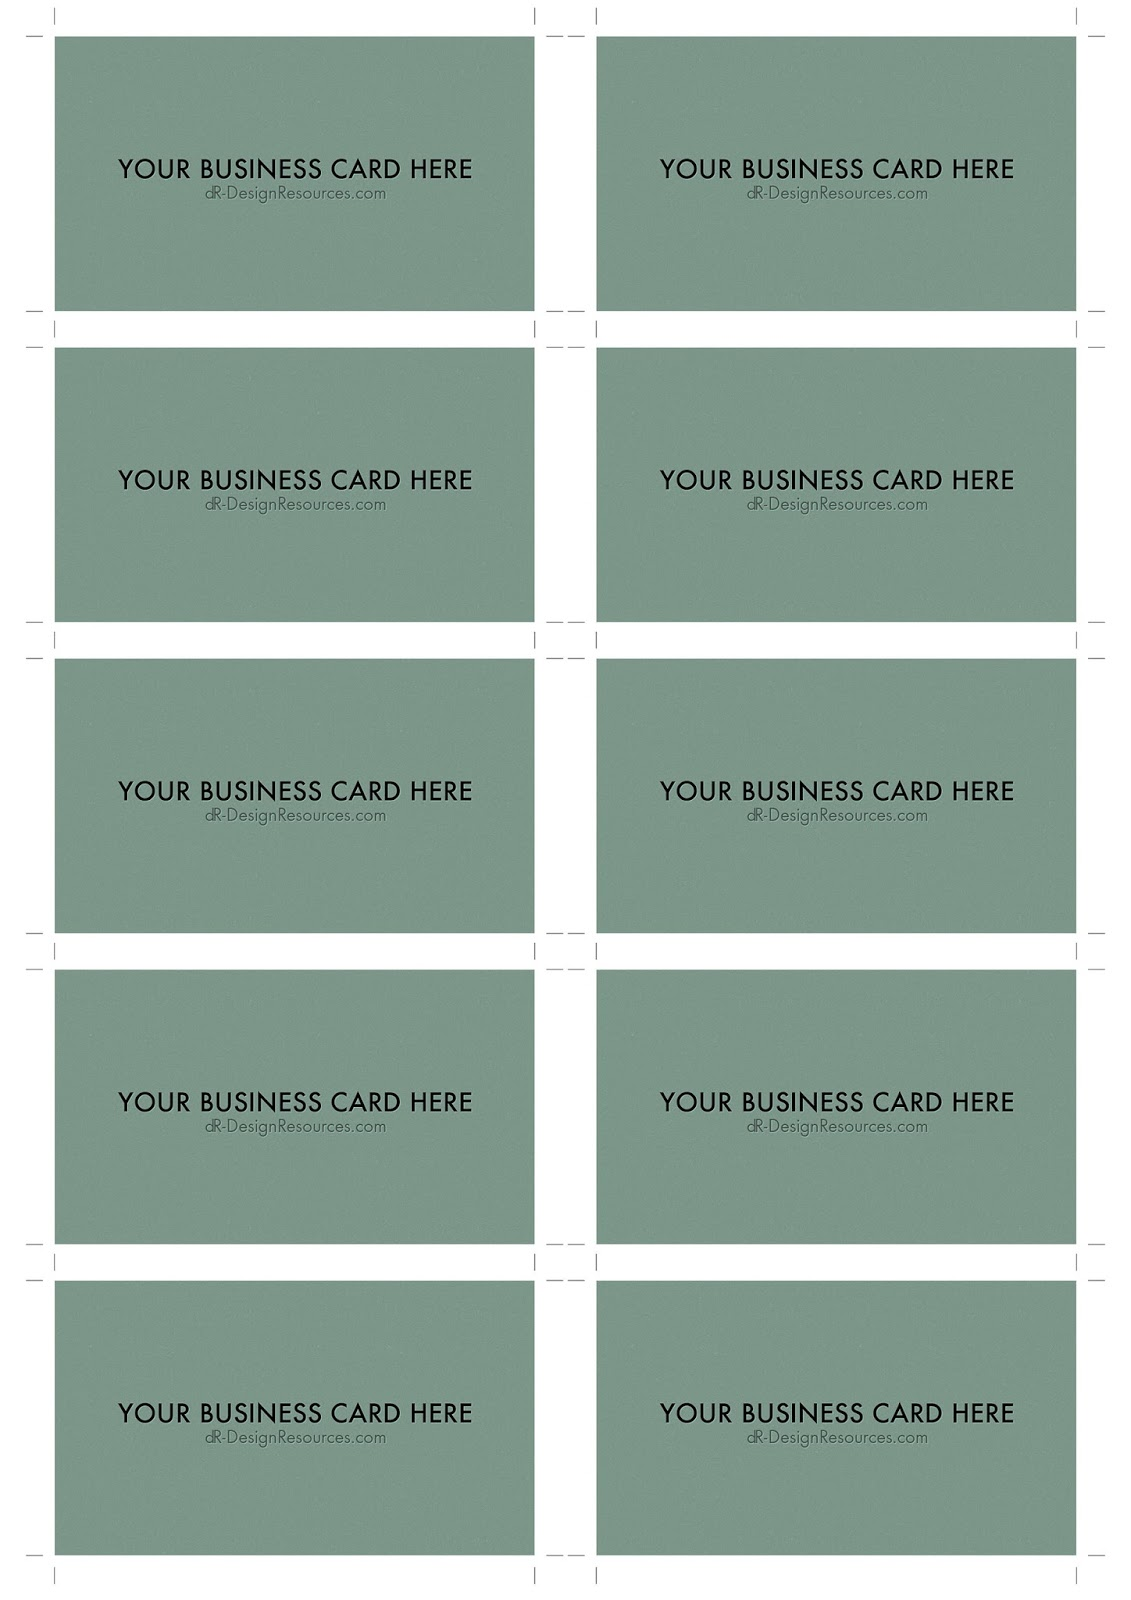 10 business card template business card design